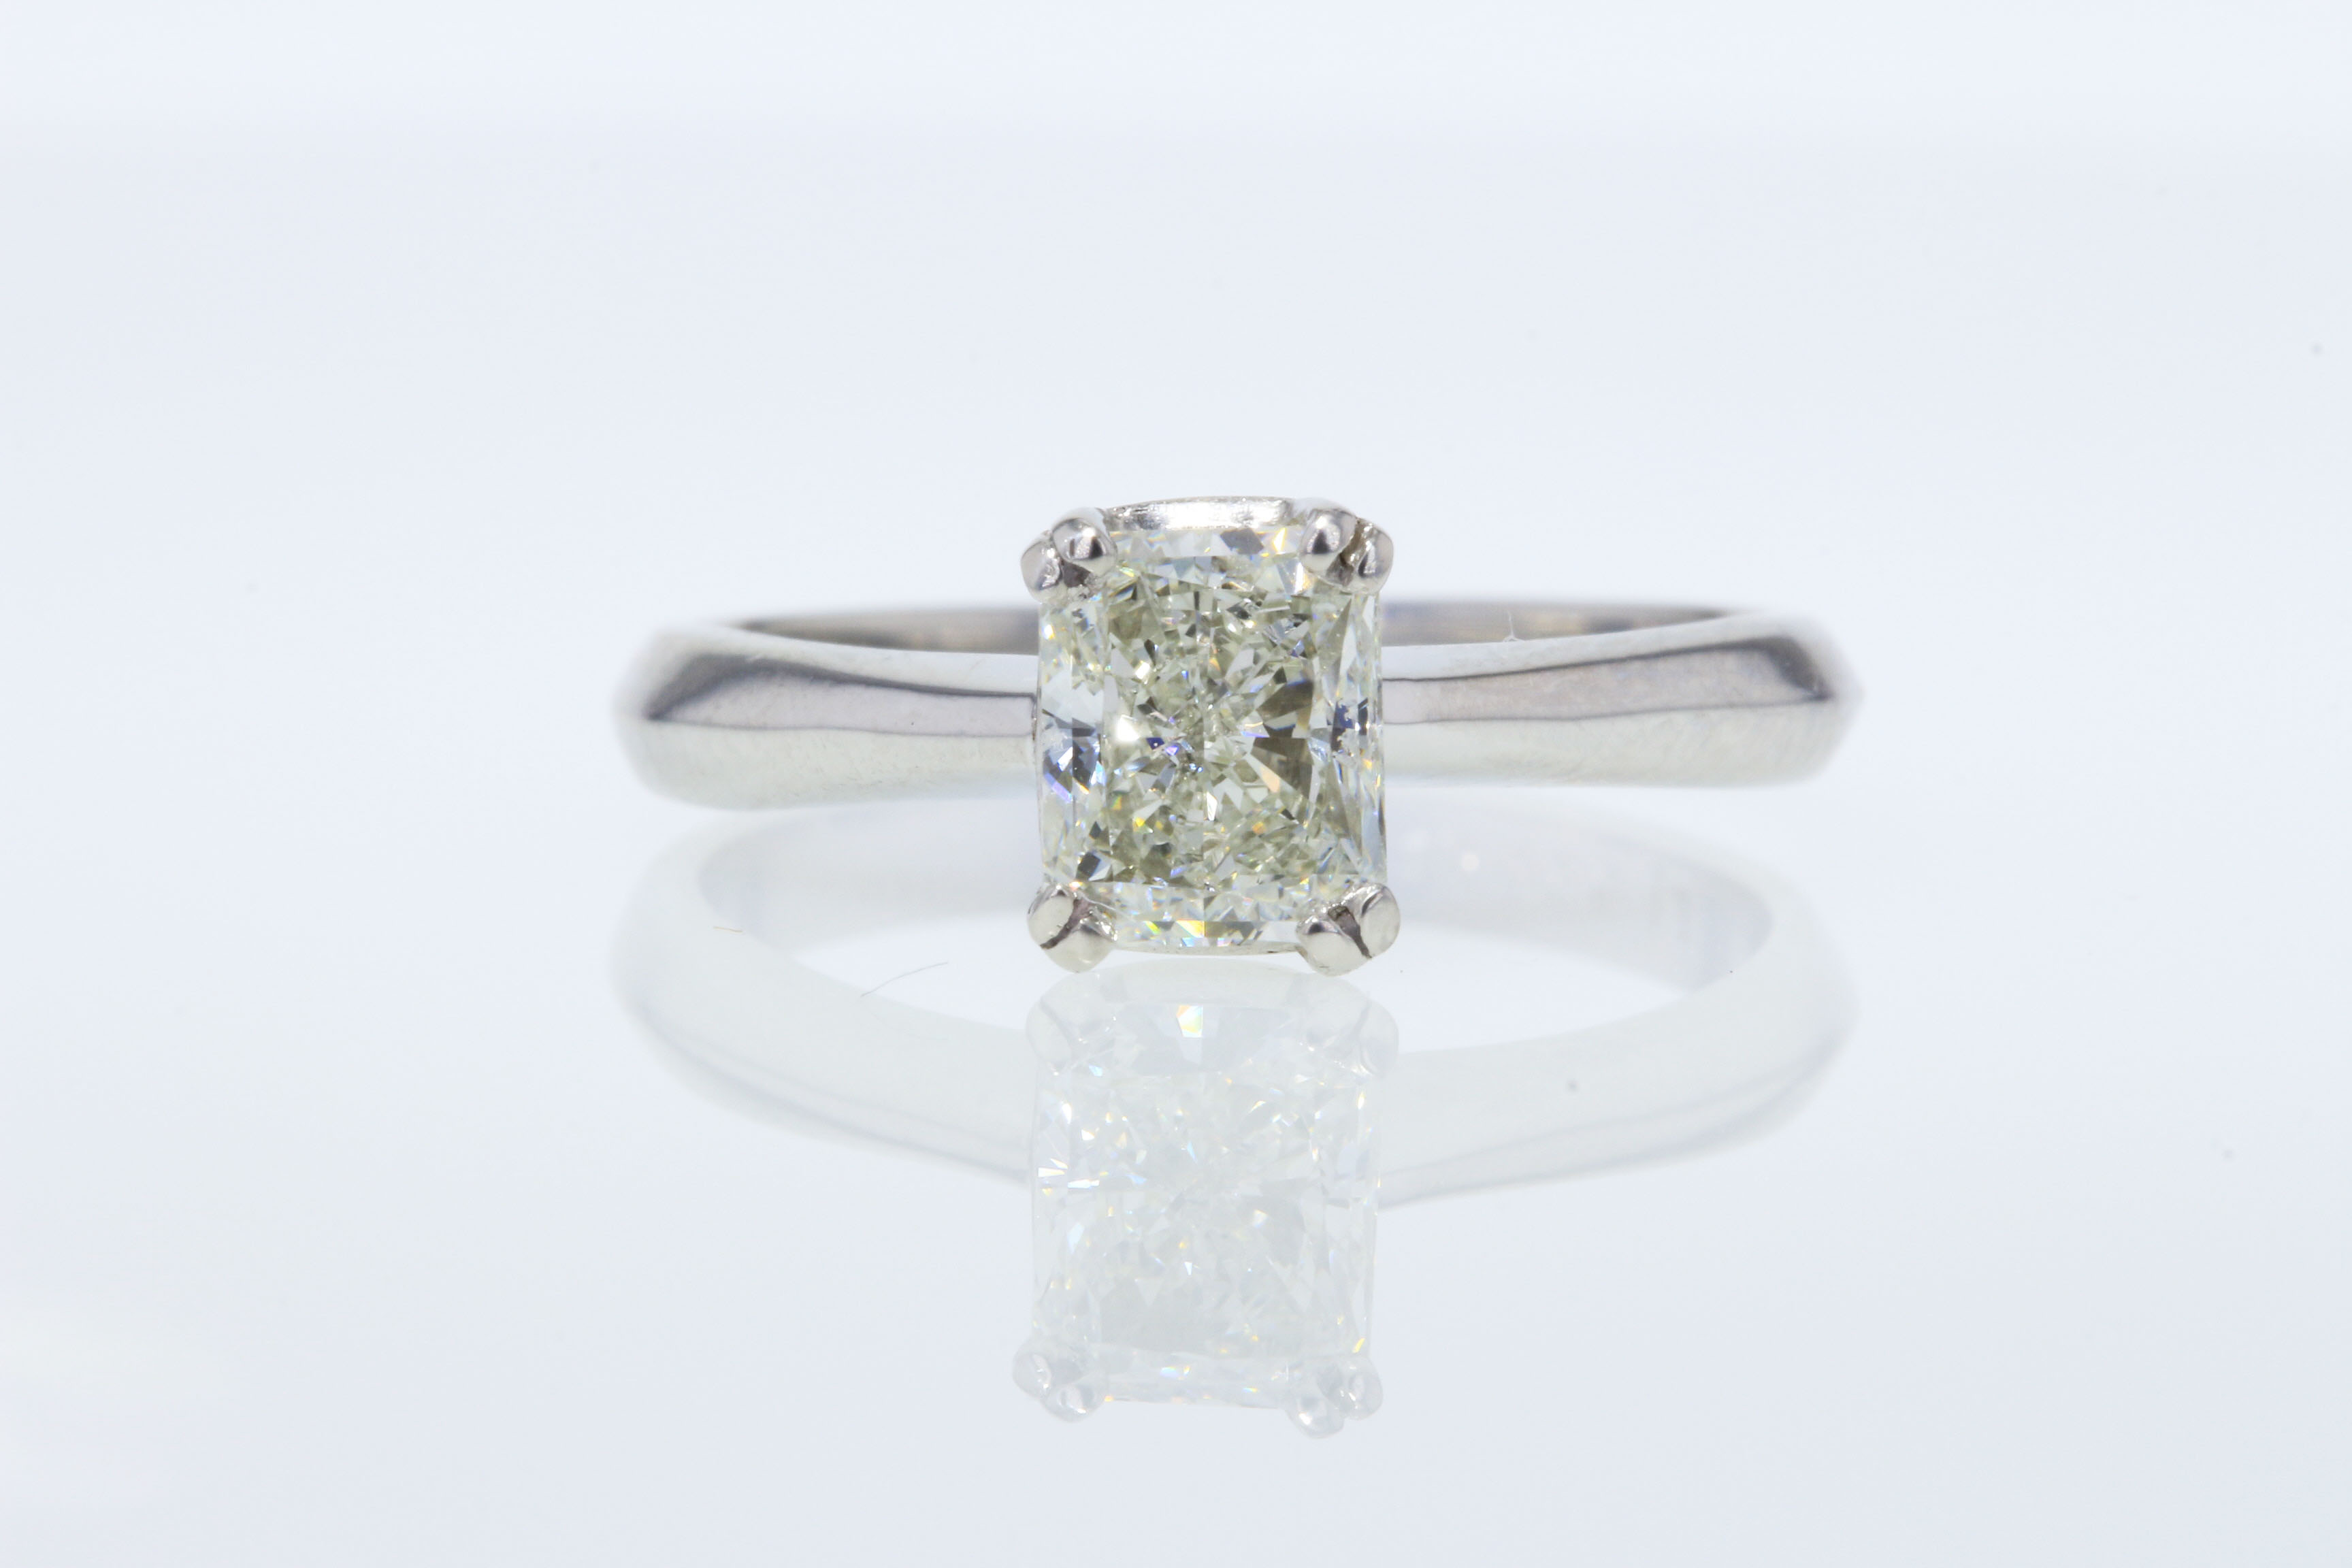 1 00CT IGI Radiant Diamond Platinum Engagement Ring